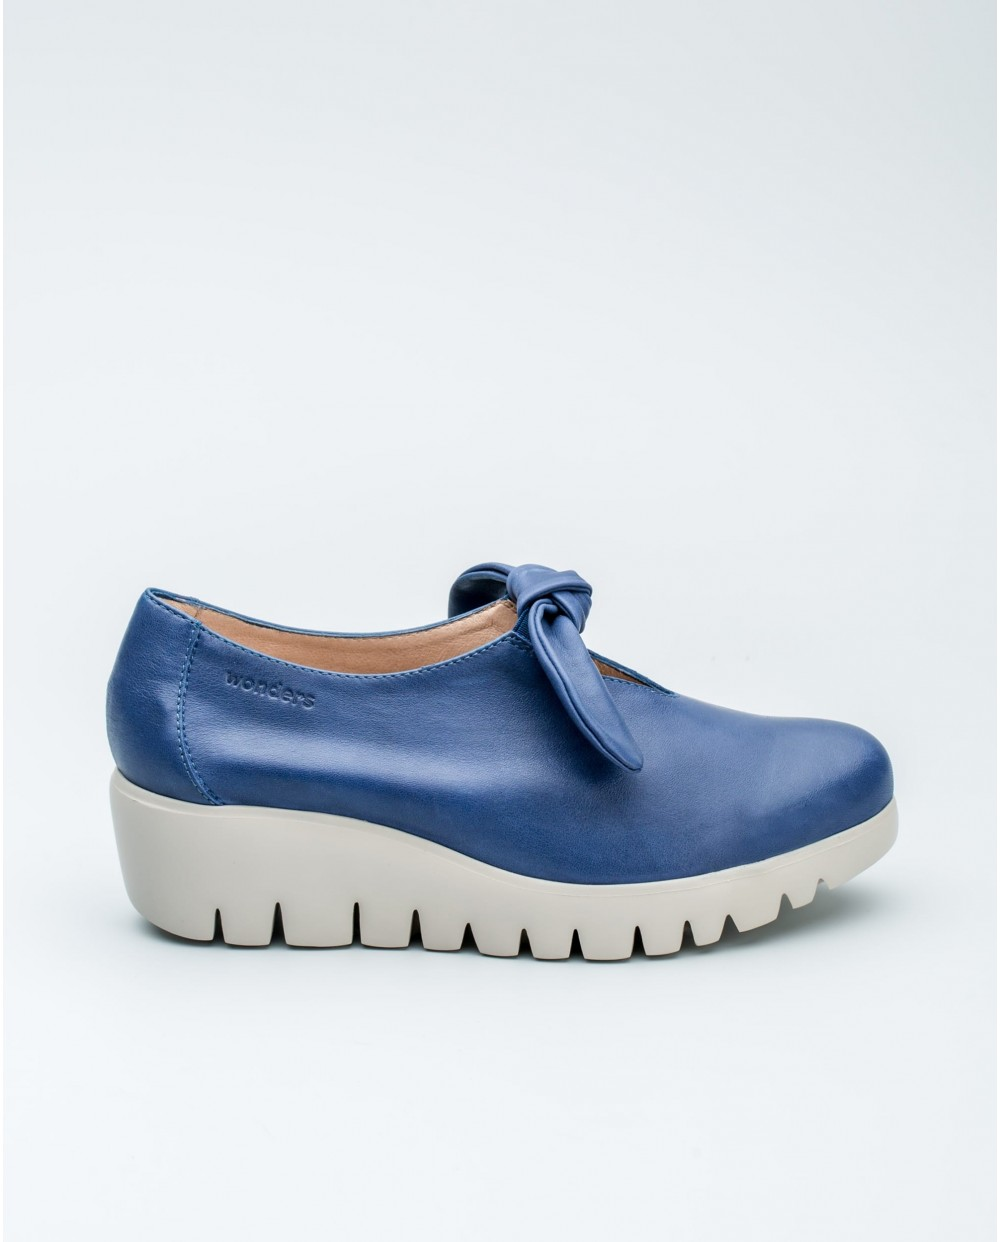 Wonders-Collections-Chain patent leather loafer